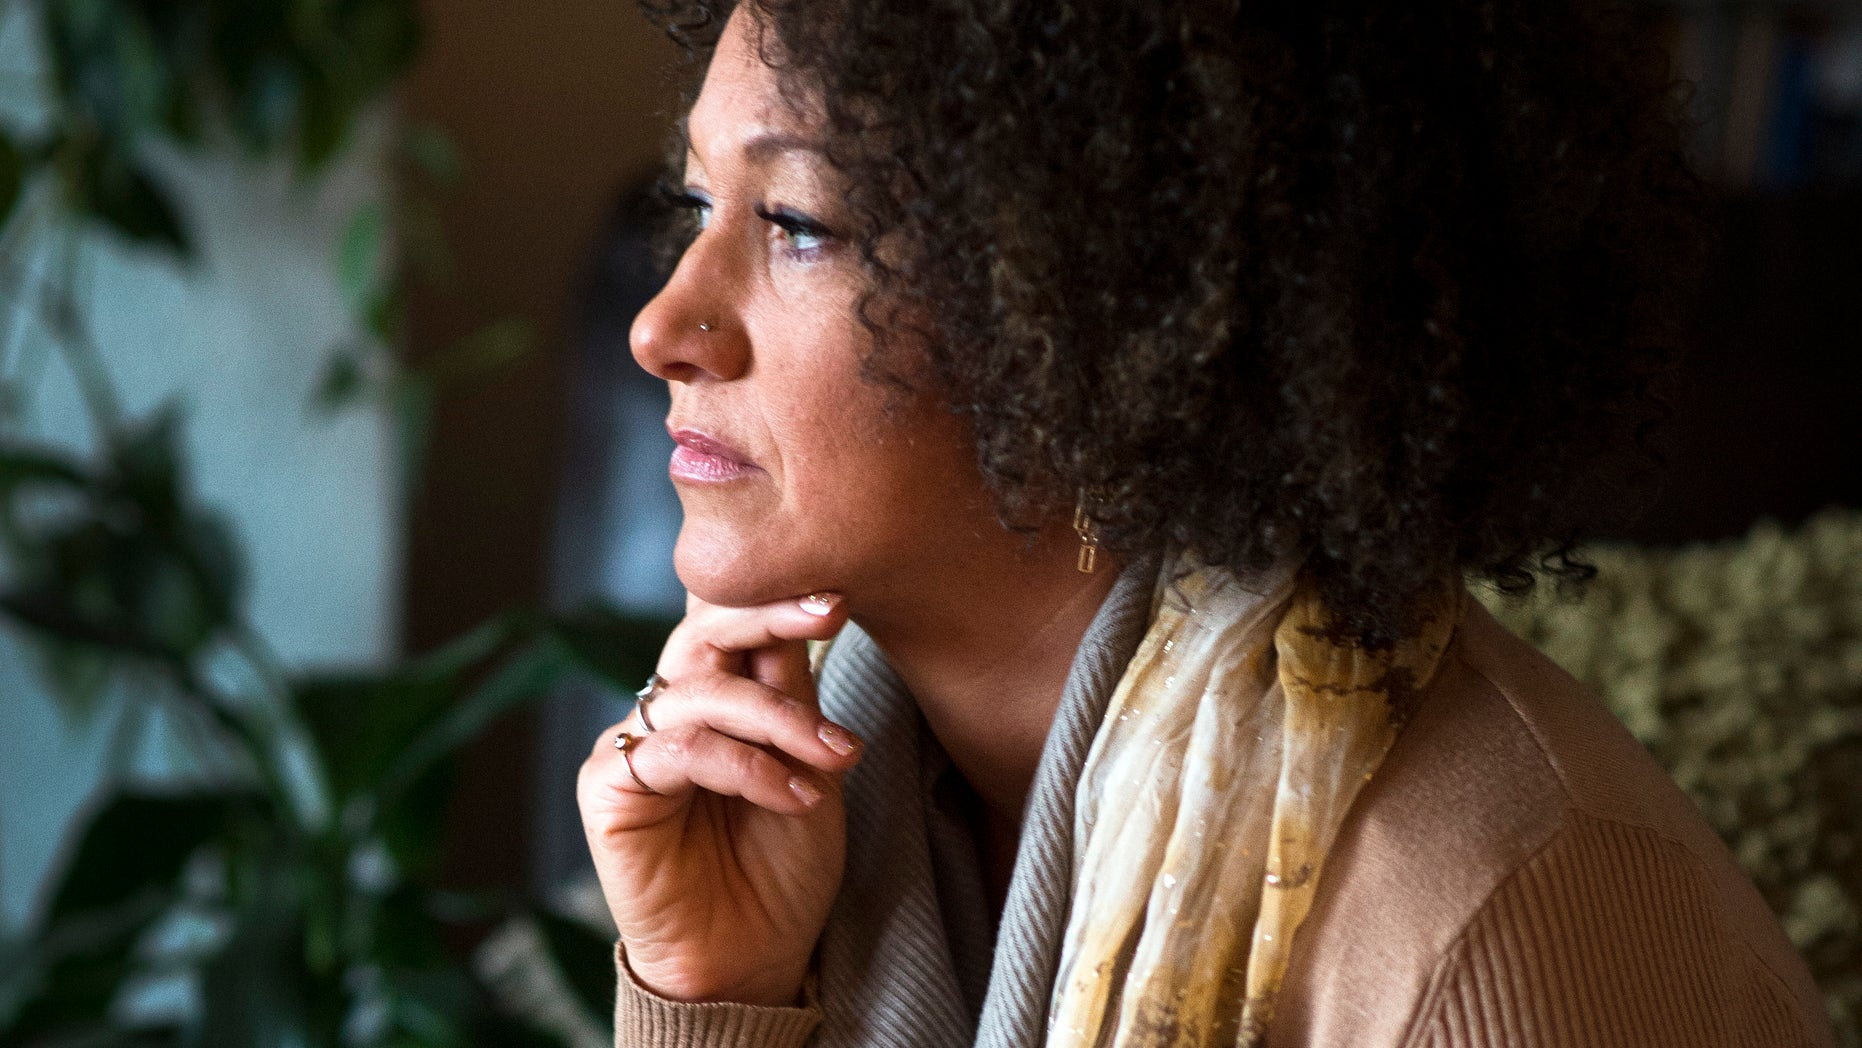 Rachel Dolezal, president of the Spokane chapter of the NAACP, on March 2, 2015.